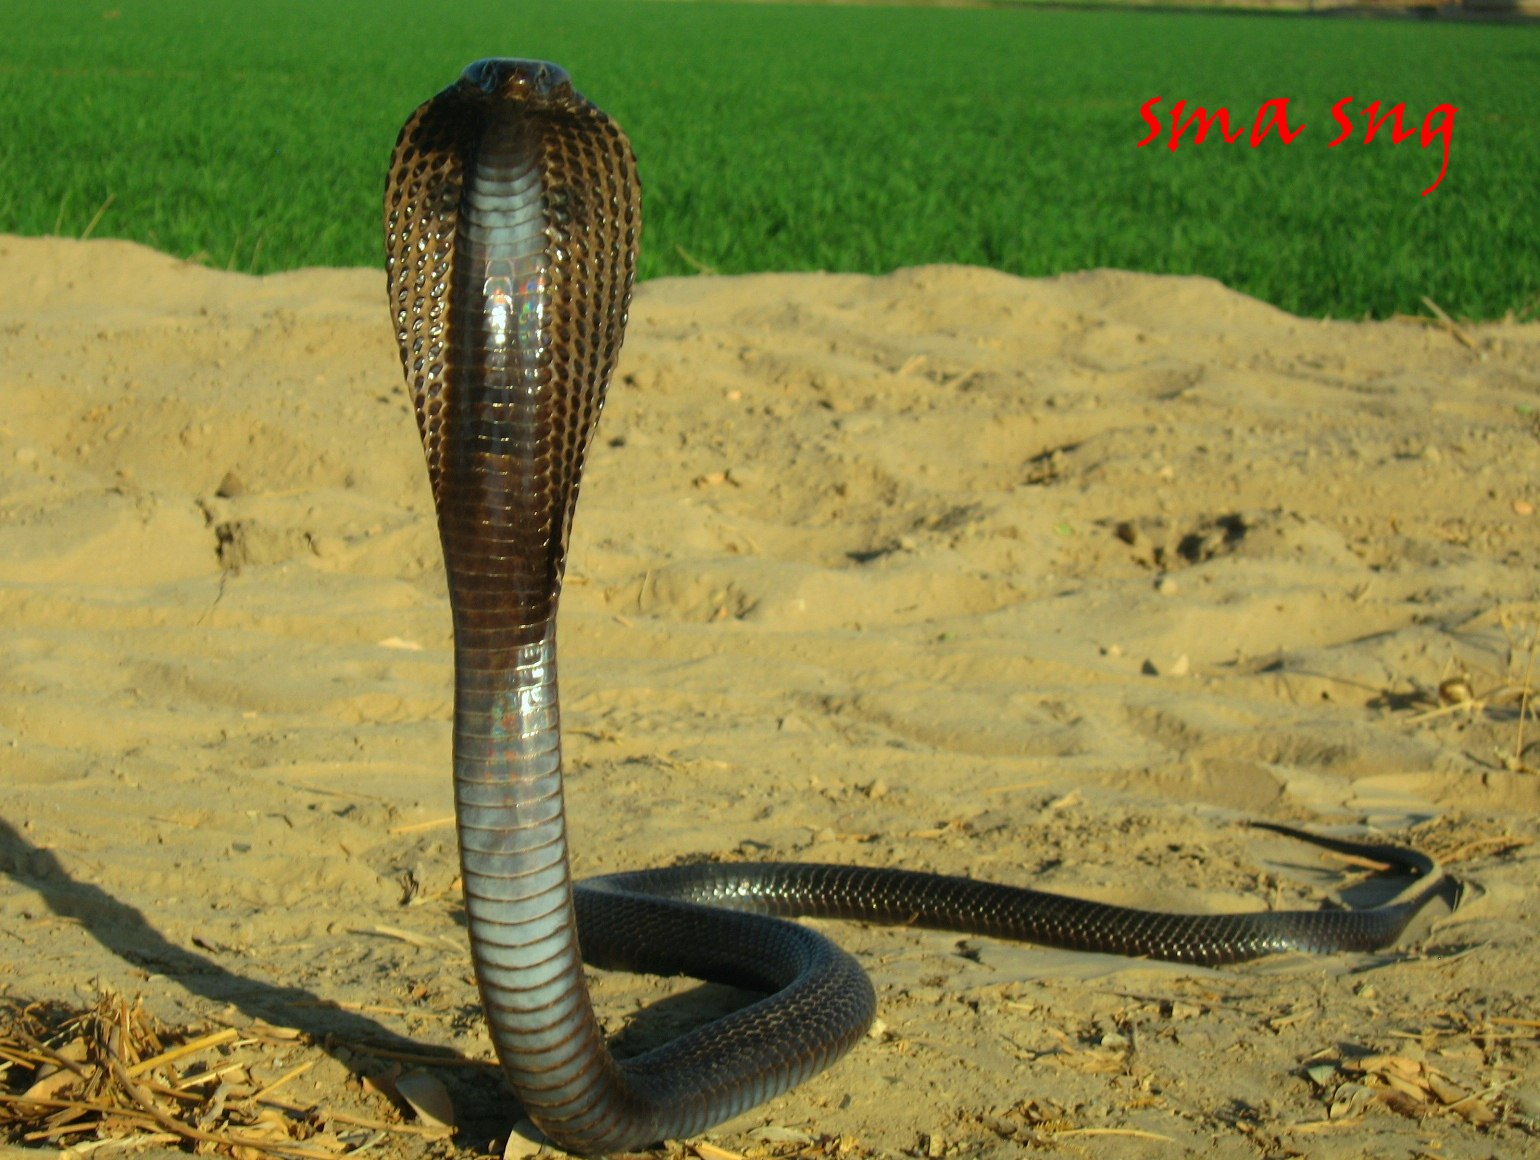 hindi snake Know about puducherry airport snake in hindi on khabarndtvcom, explore puducherry airport snake with articles, photos, video, न्यूज़, ताज़ा ख़बर in hindi.